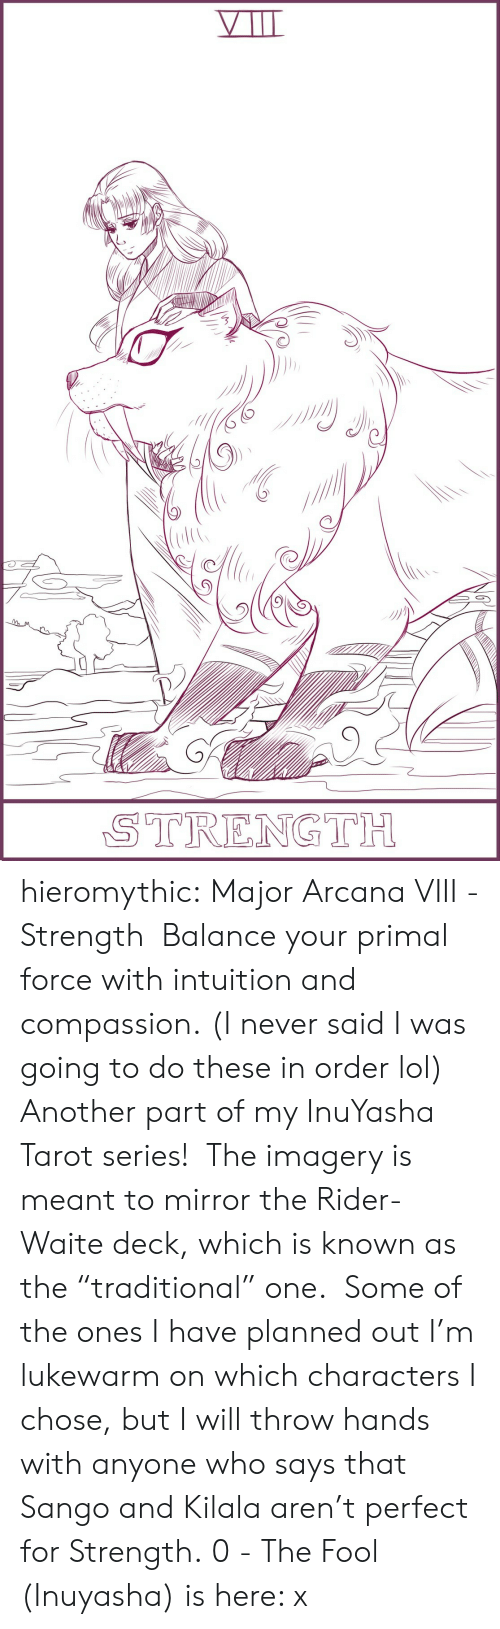 "Lol, Target, and Tumblr: STRENGTH hieromythic:   Major Arcana VIII - Strength  Balance your primal force with intuition and compassion. (I never said I was going to do these in order lol)  Another part of my InuYasha Tarot series!  The imagery is meant to mirror the Rider-Waite deck, which is known as the ""traditional"" one.  Some of the ones I have planned out I'm lukewarm on which characters I chose, but I will throw hands with anyone who says that Sango and Kilala aren't perfect for Strength. 0 - The Fool (Inuyasha) is here: x"